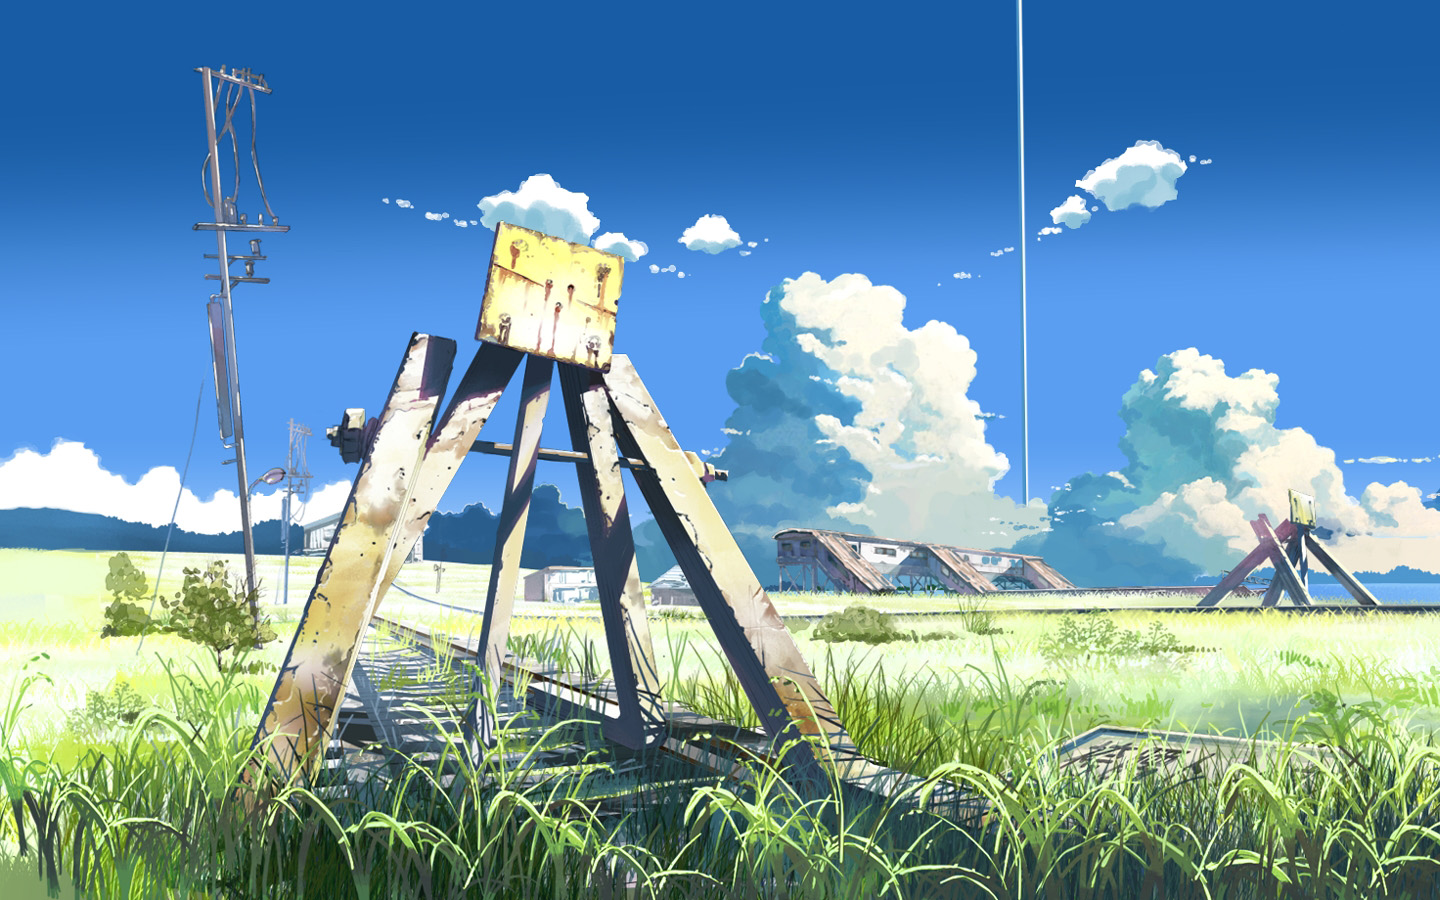 Studio Ghibli Wallpaper HD